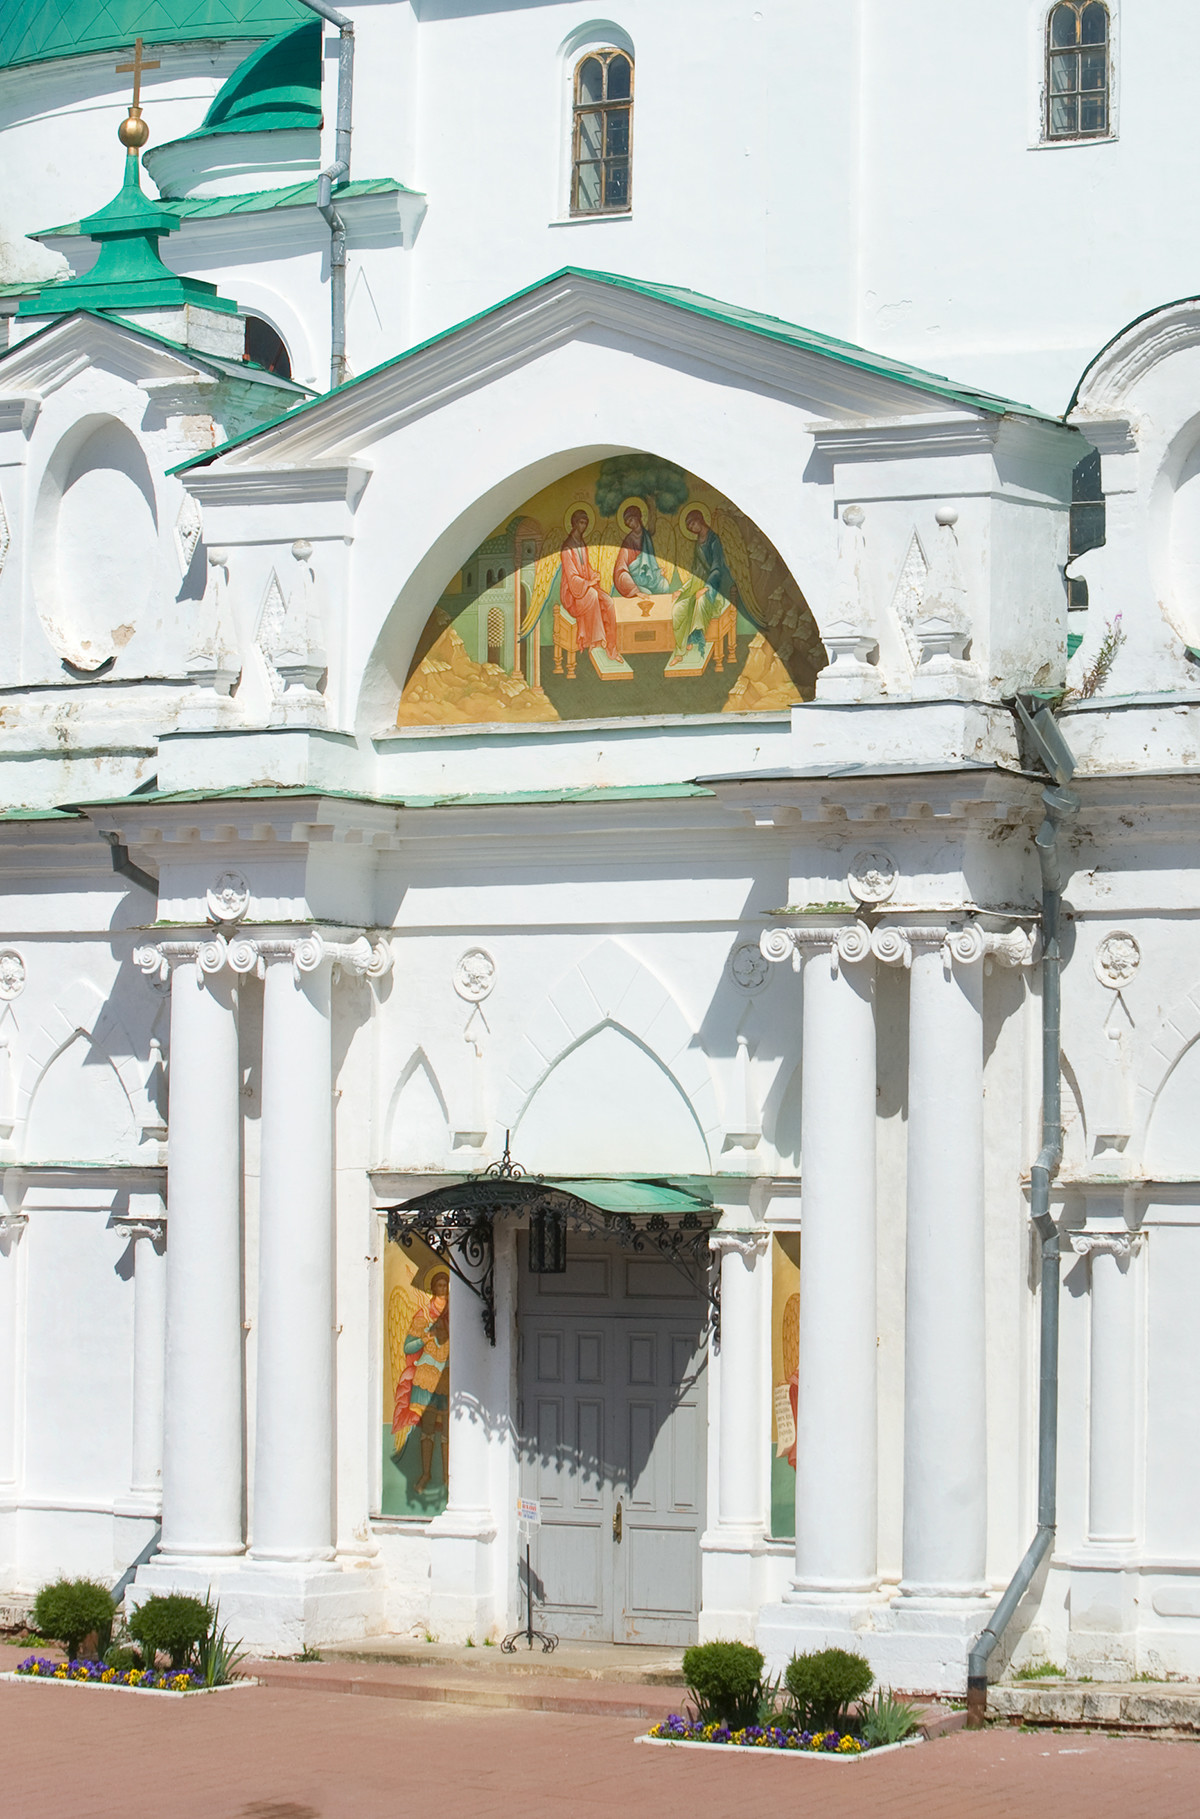 Cathedral of Conception of St. Anne. West view with main entrance. Painting of Old Testament Trinity on tympanum of narthex pediment. July 7, 2019